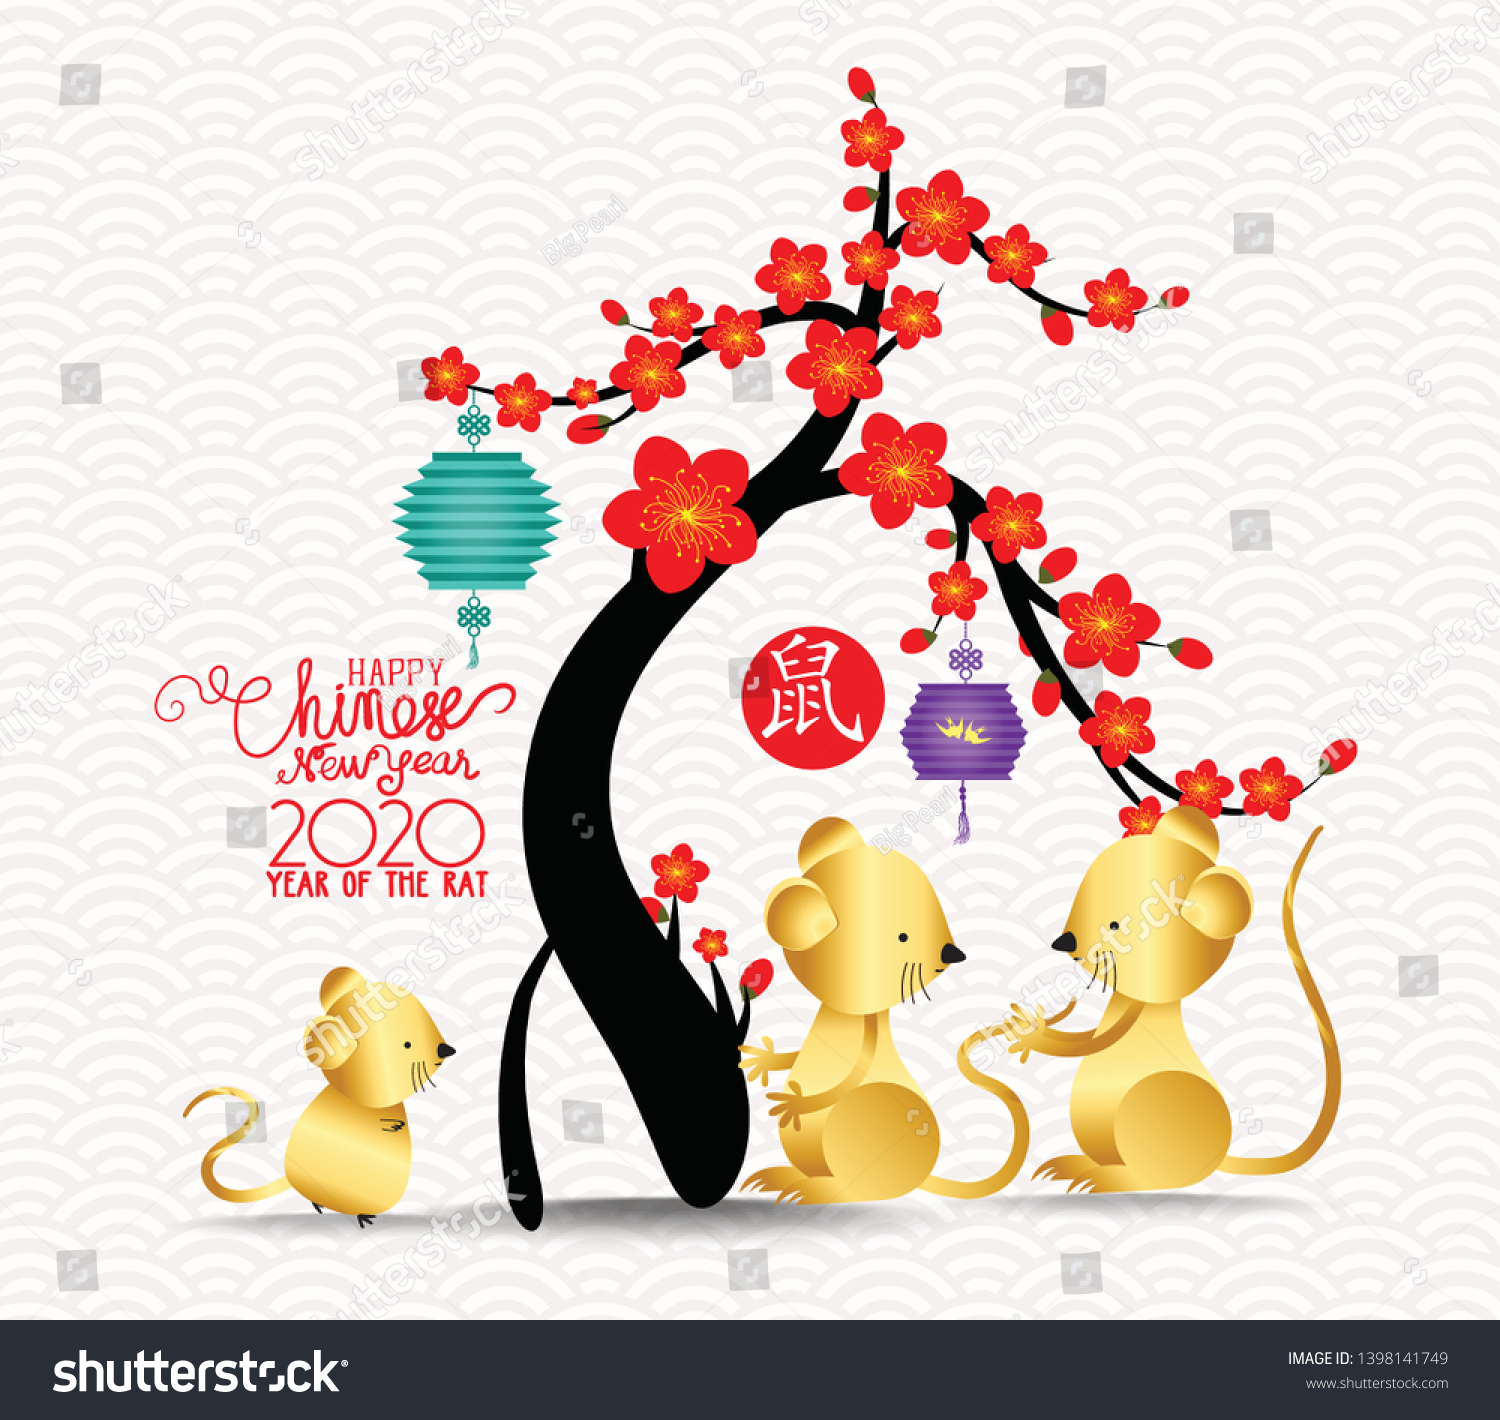 chinese new year blossom tree 2020 stock vector royalty free 1398141749 https www shutterstock com image vector chinese new year blossom tree 2020 1398141749